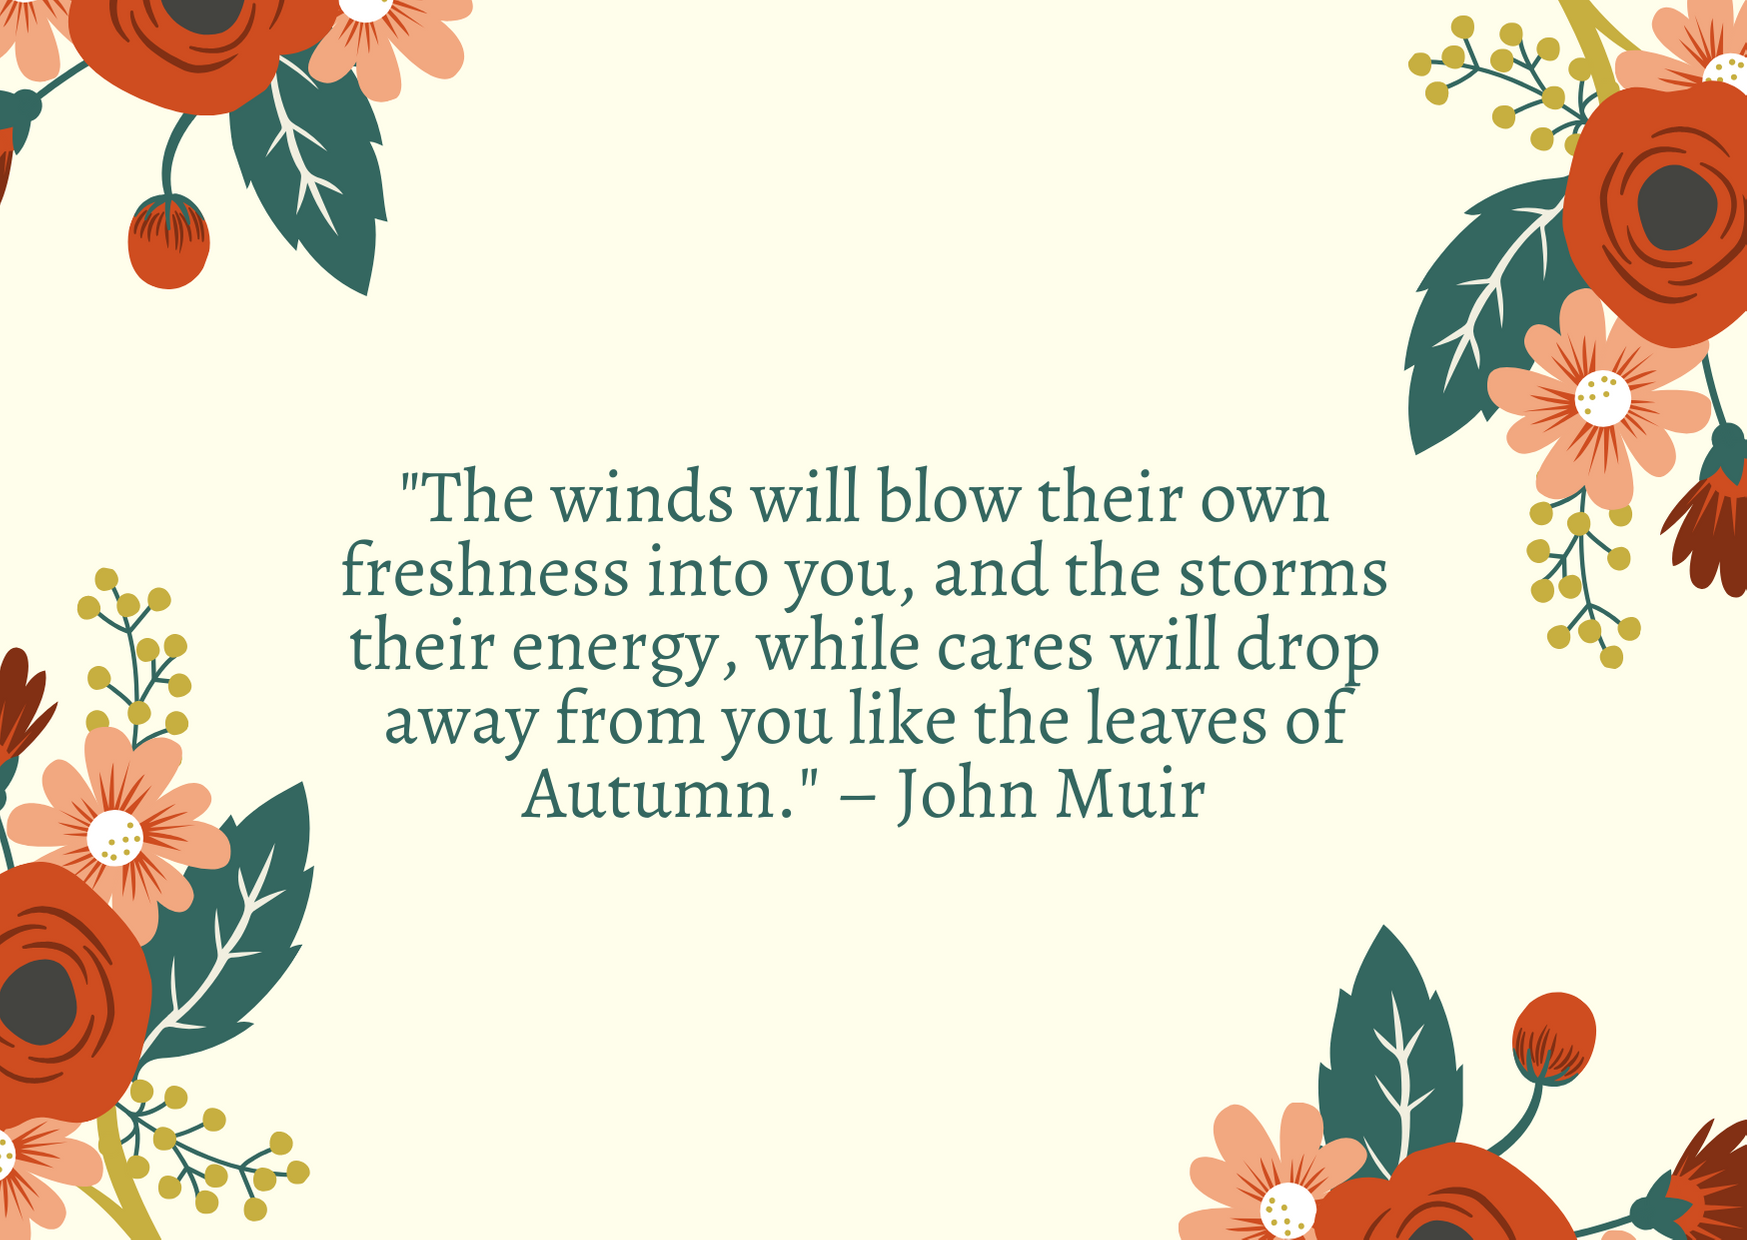 """The winds will blow their own freshness into you, and the storms their energy, while cares will drop away from you like the leaves of Autumn."" – John Muir"